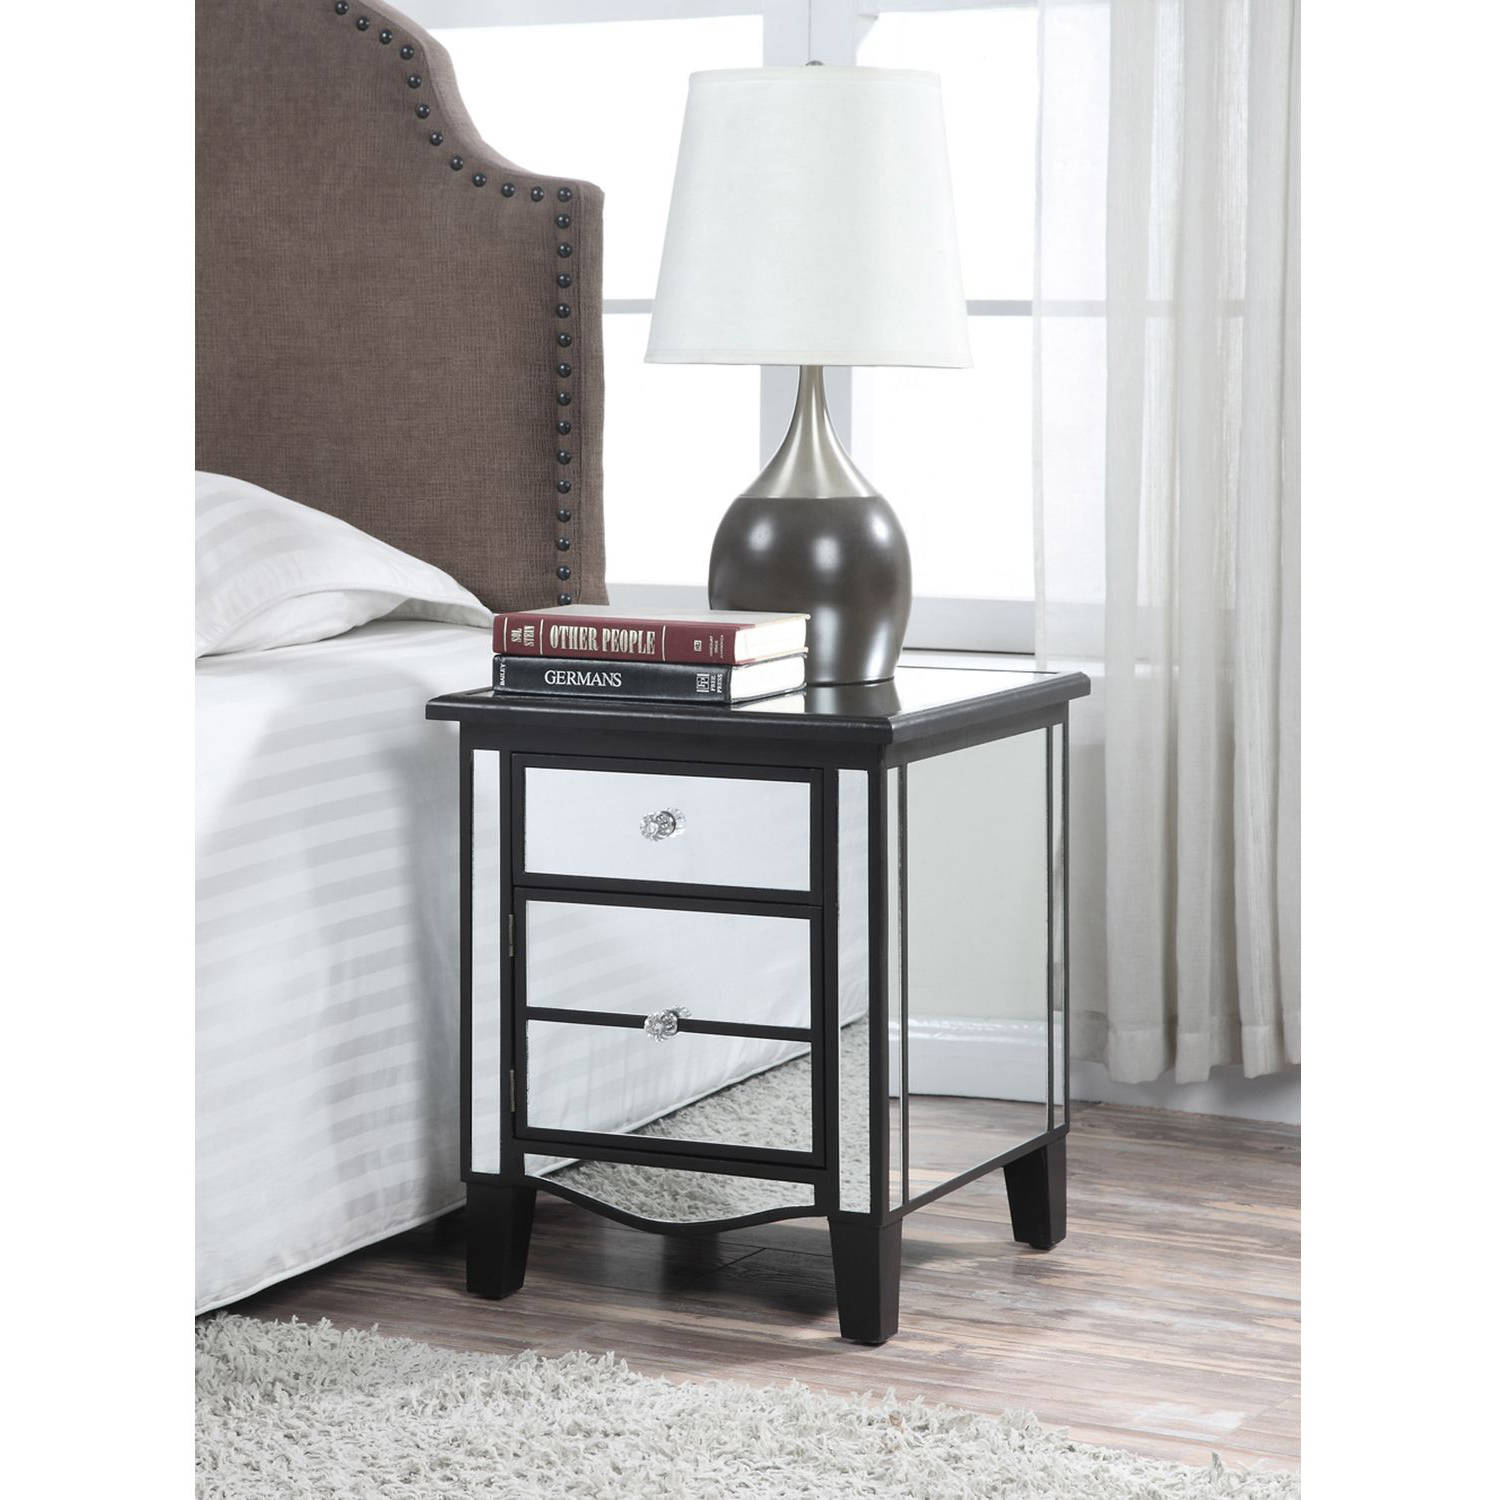 convenience concepts gold coast park lane mirrored end table glass bedroom tables multiple colors black oak coffee wood block nightstand ashley hogan sofa brown couch what color